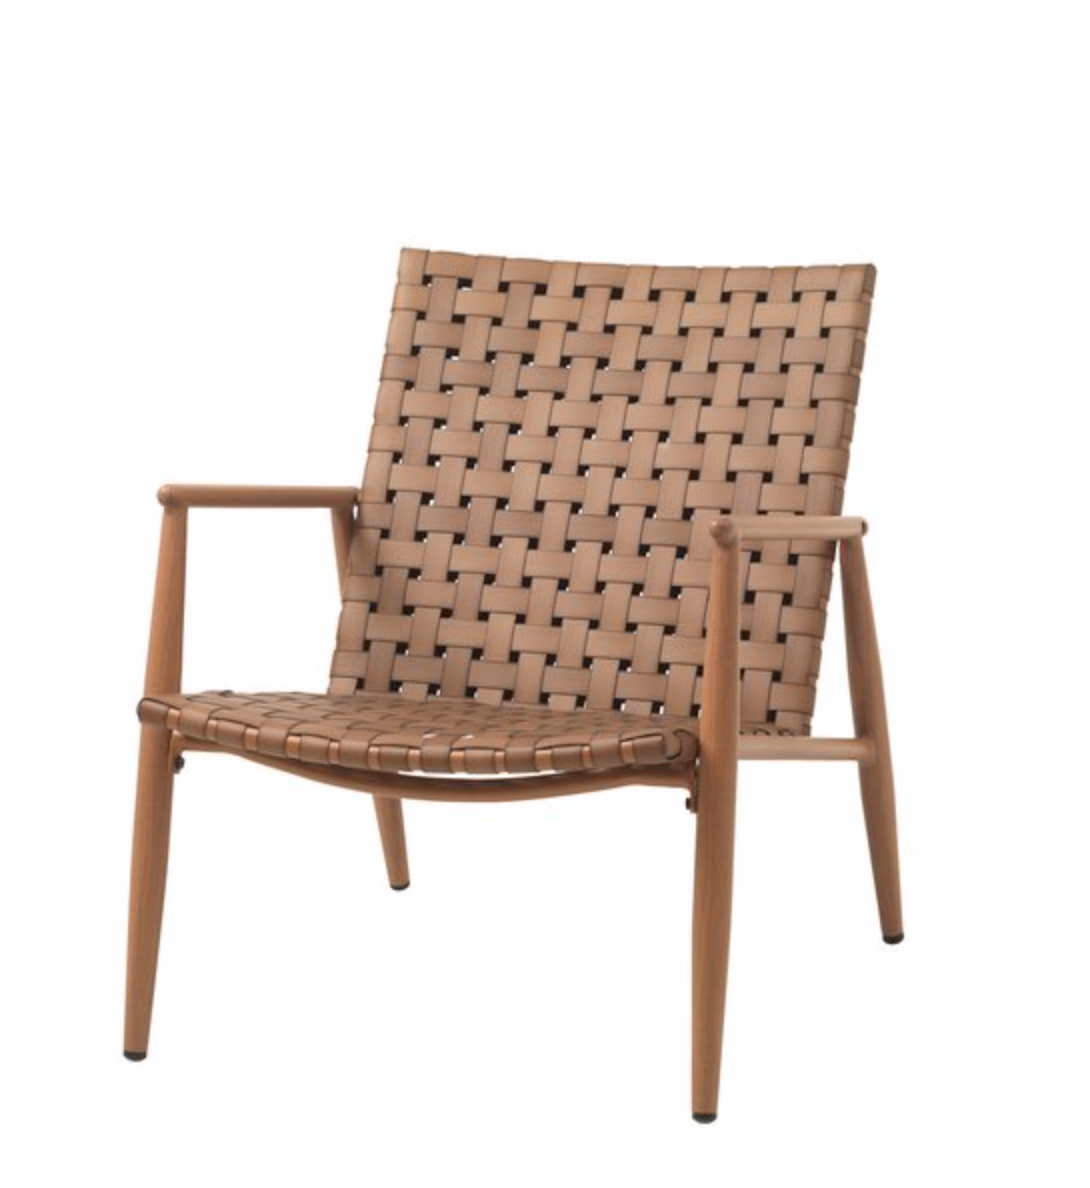 Woven scandi style outdoor lounge chair